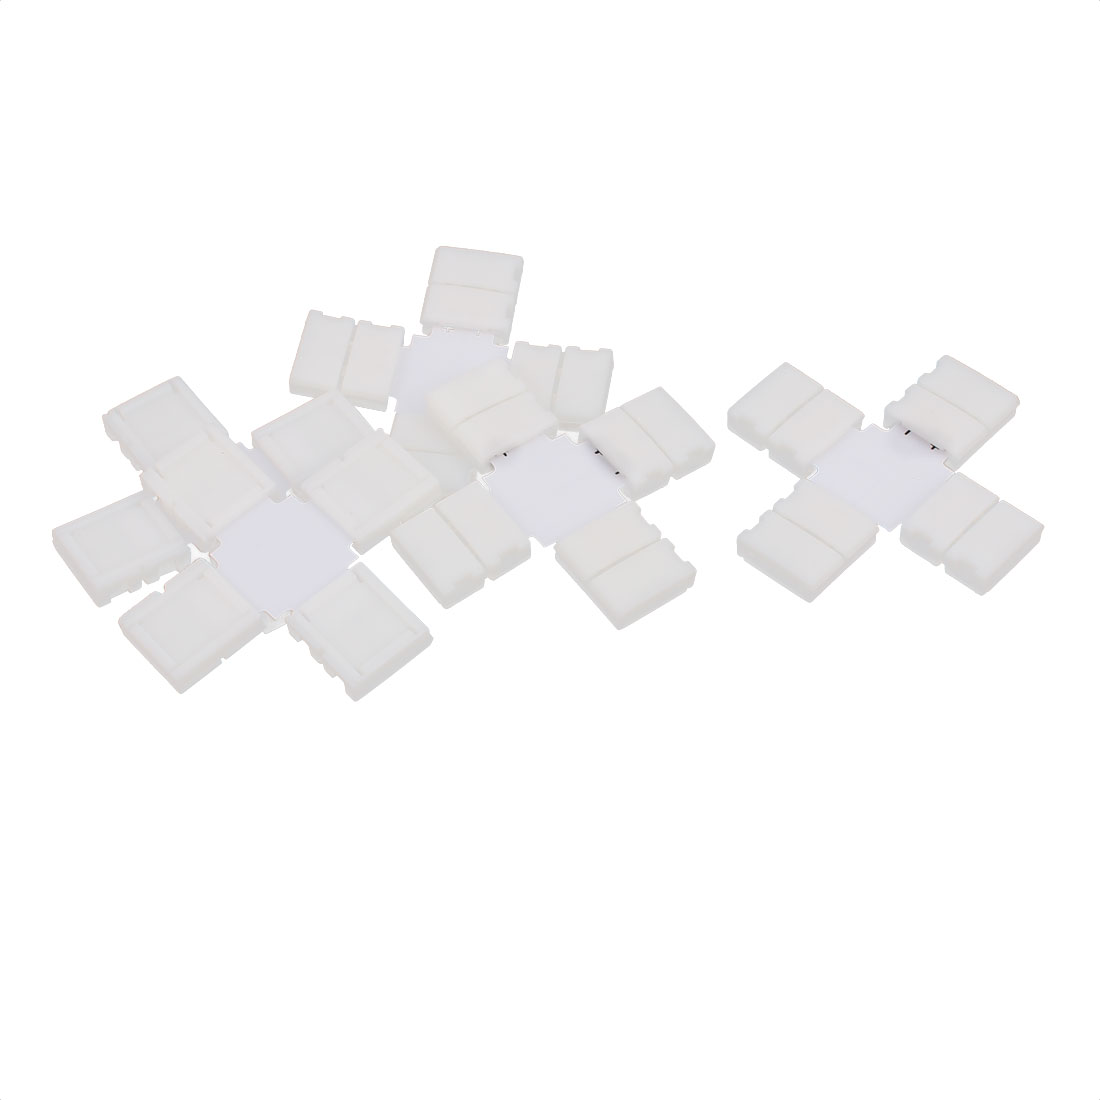 10mm Wide 4 Pin RGB Light Strip Cross Connectors Off White 5pcs for 5050 LED